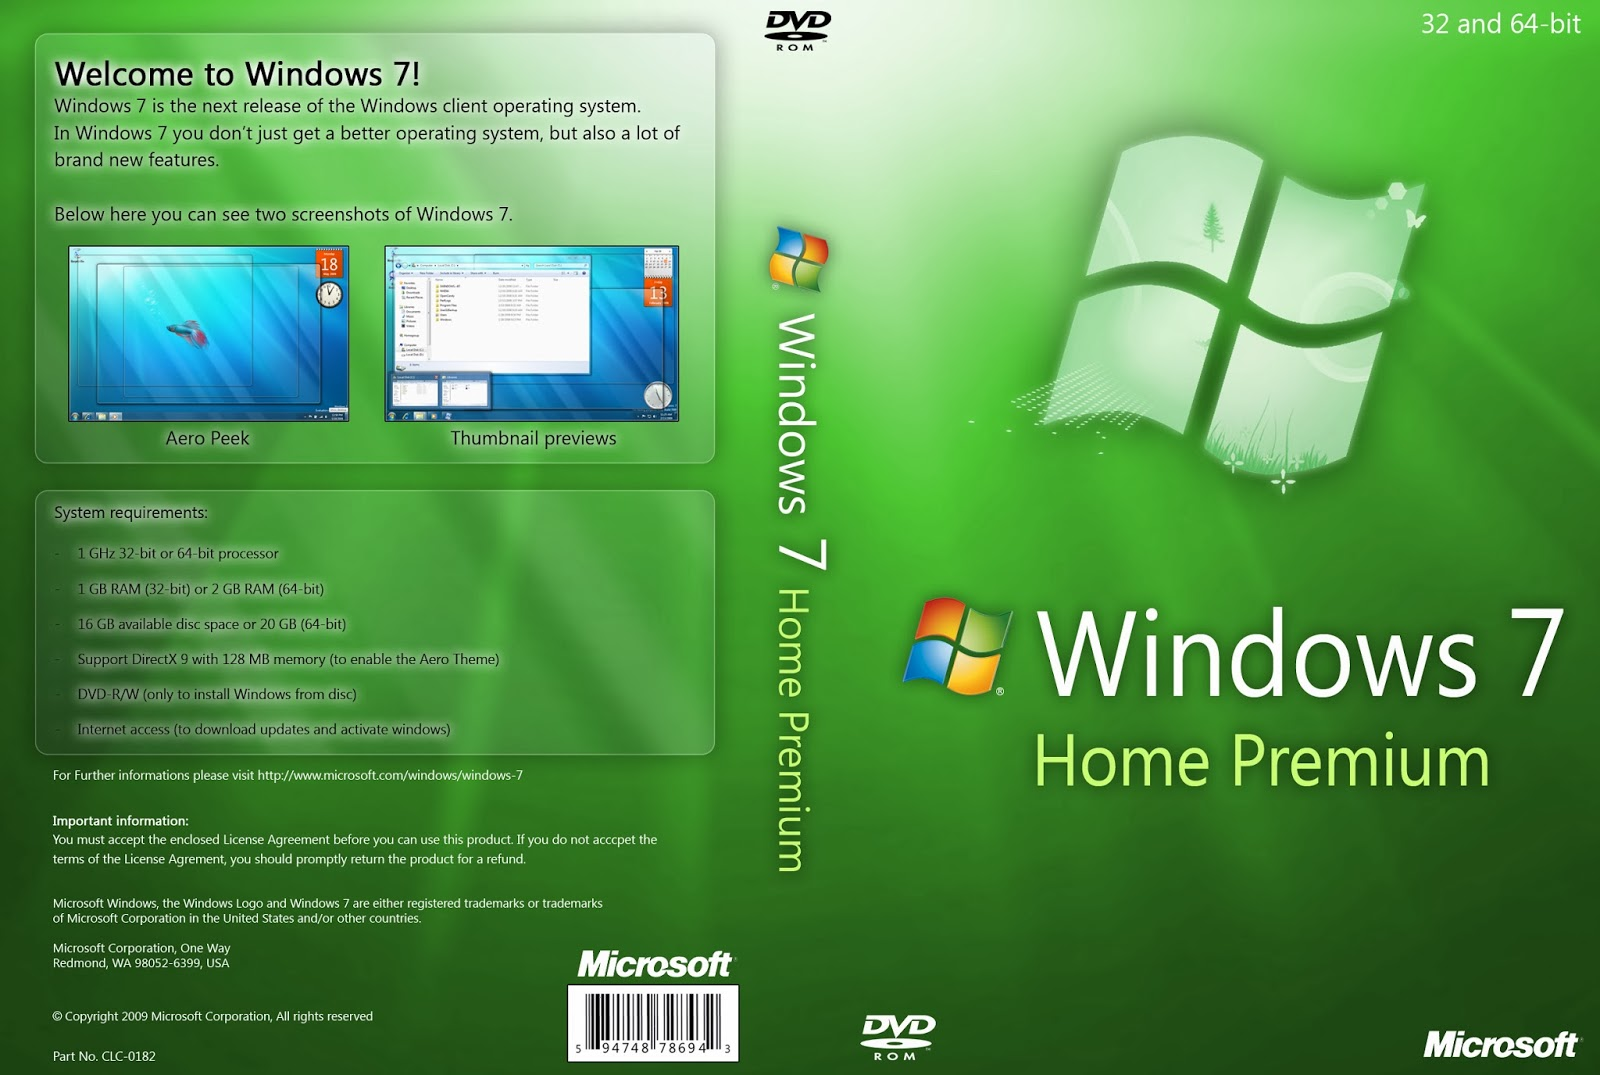 Windows 7 Home Premium free download ~ ((♥)) Welcome To My Blog ((♥))